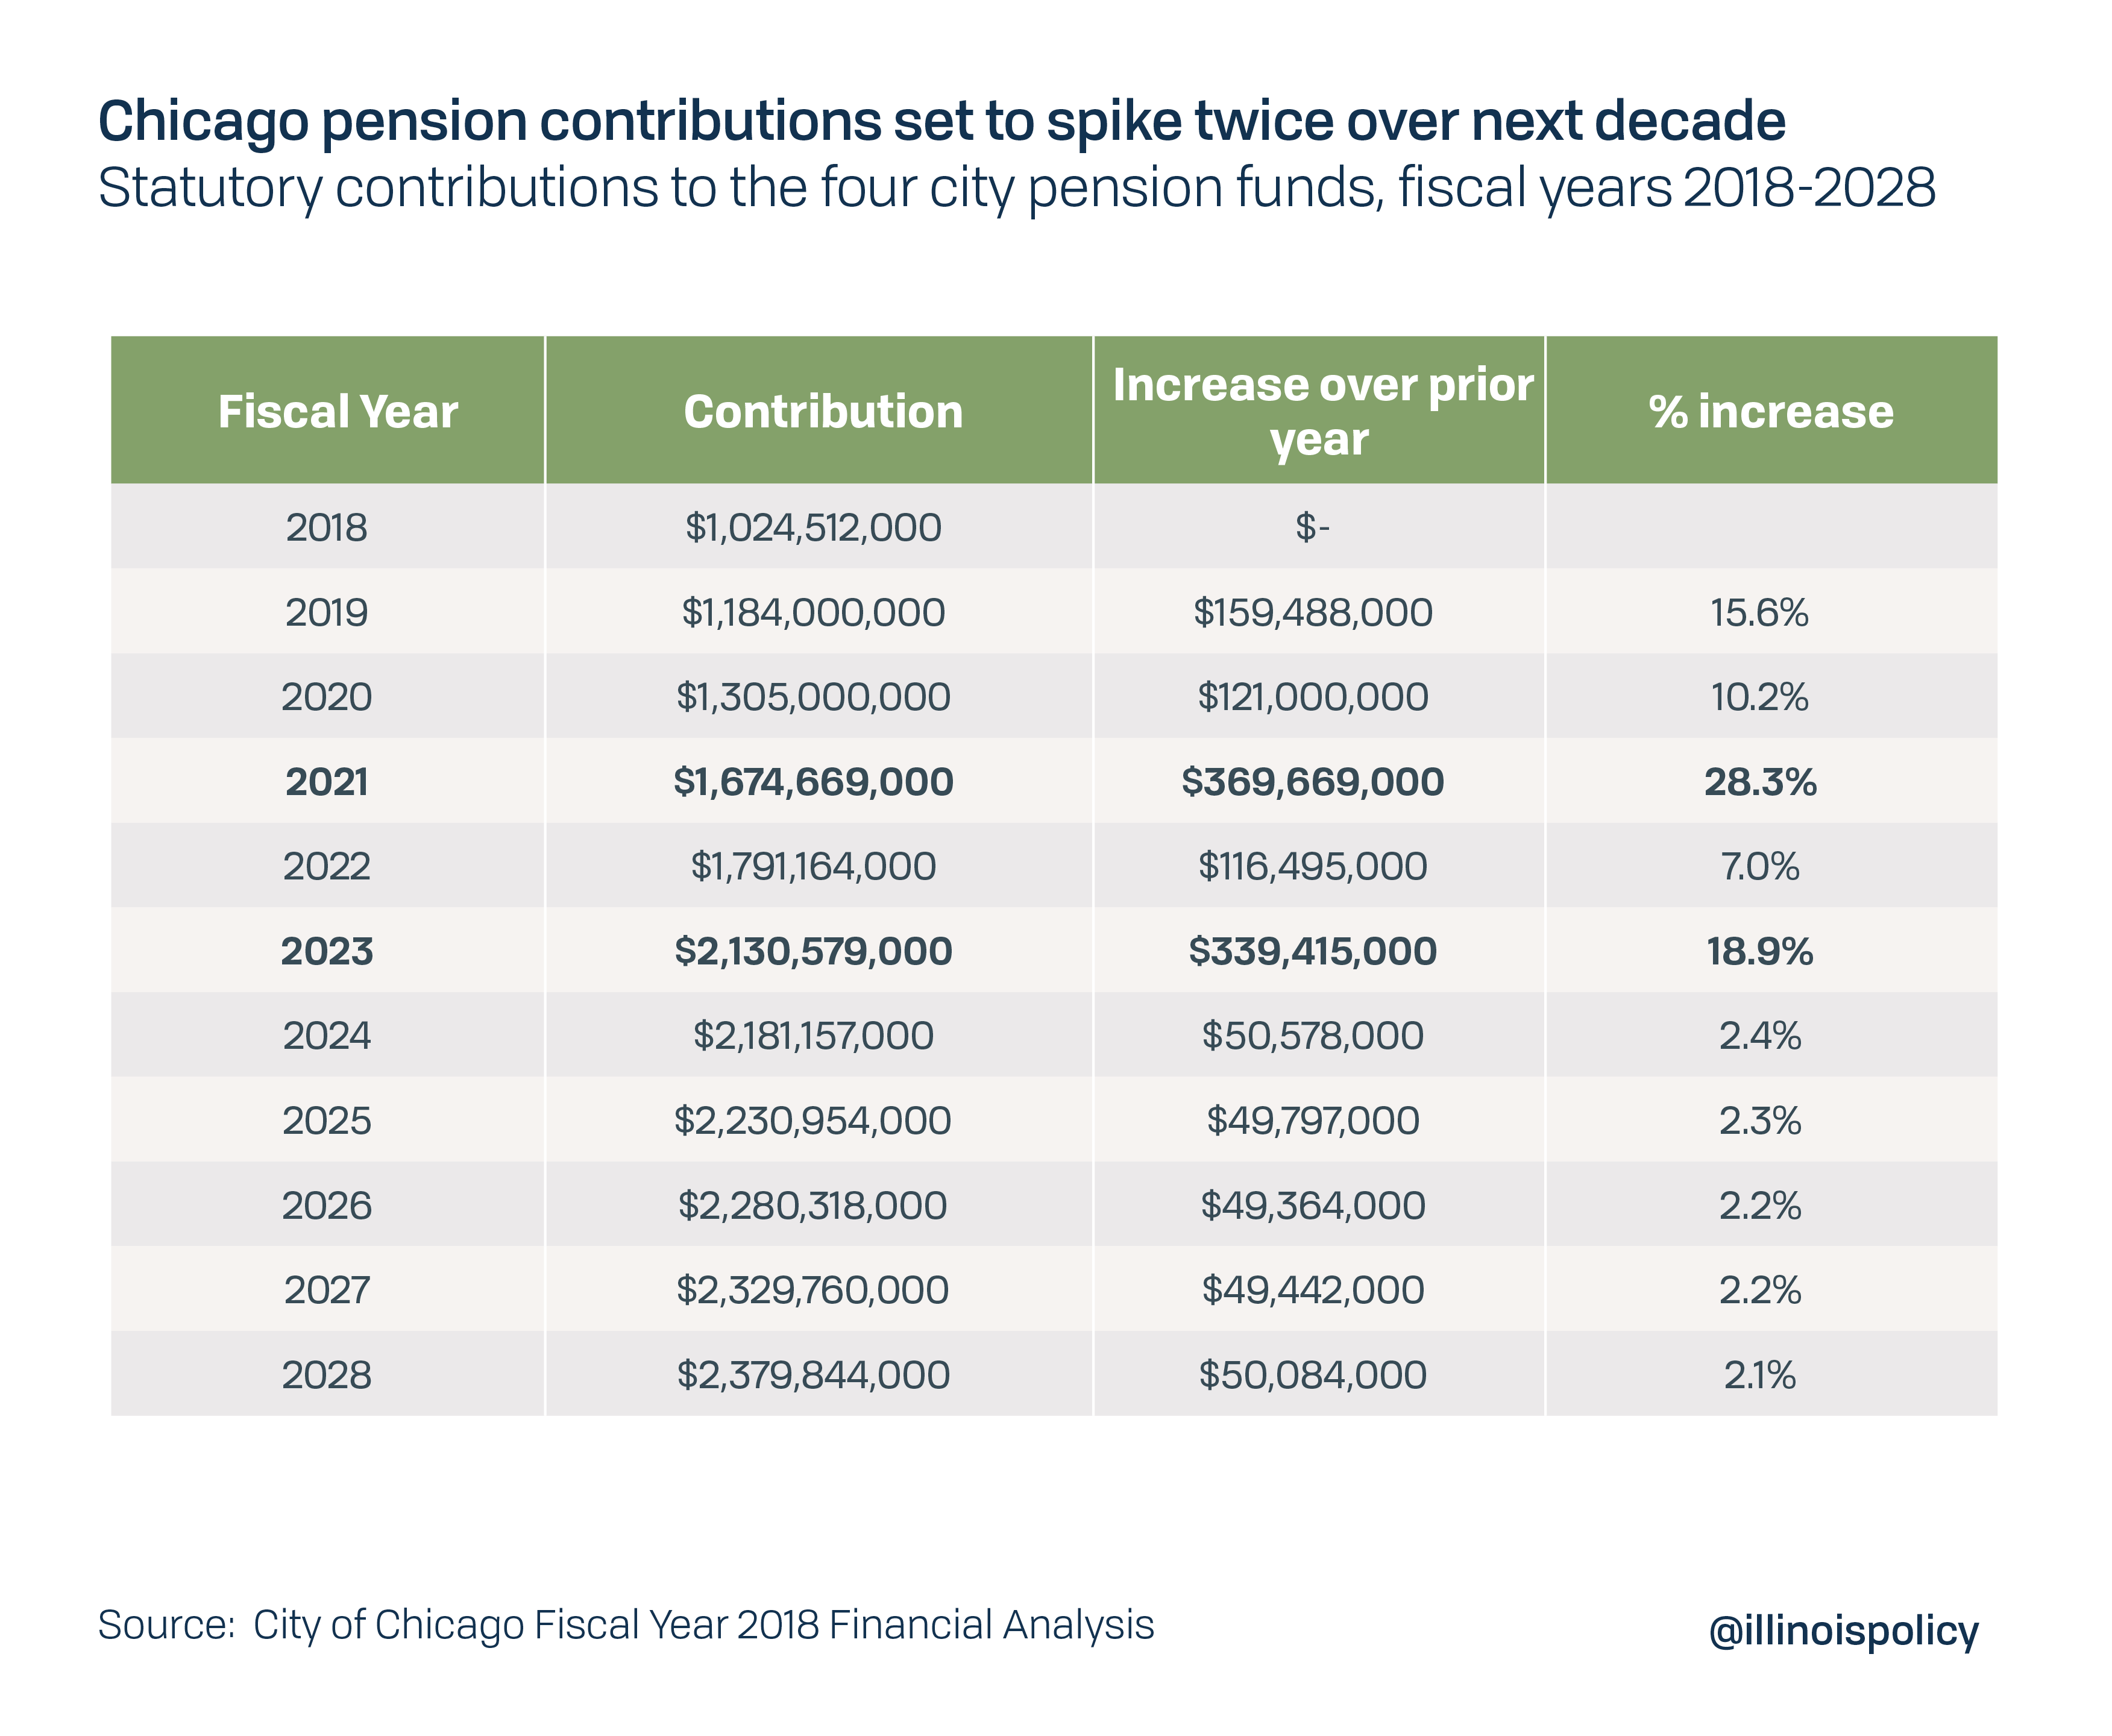 Chicago pension contributions set to spike twice over the next decade